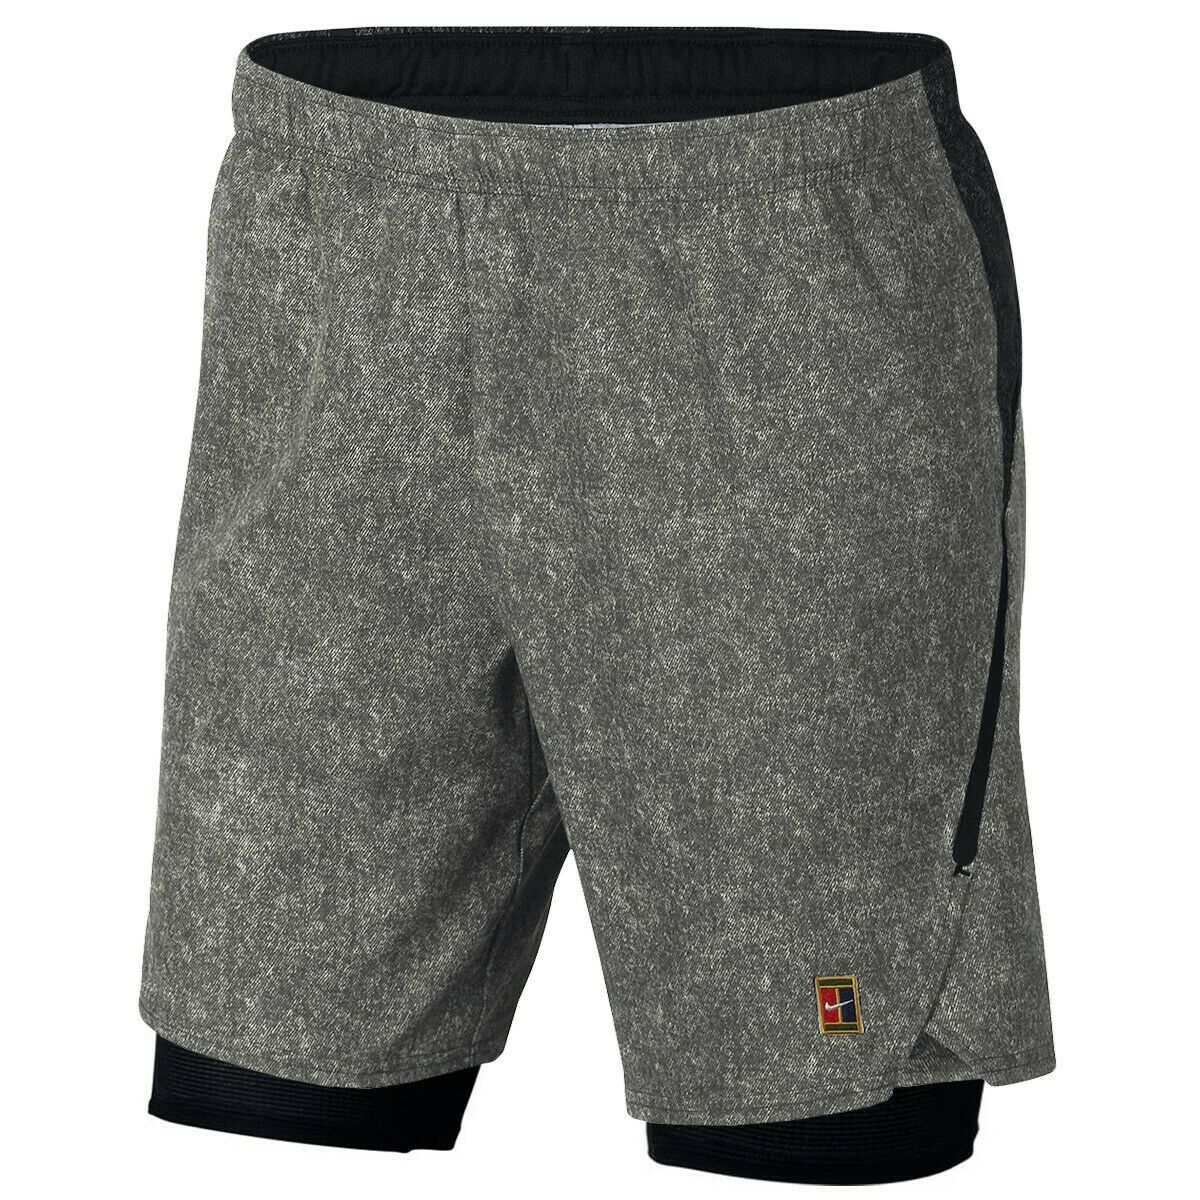 Nike Flex court shorts Ace Pro 2 in 1 Model Agassi Talla M